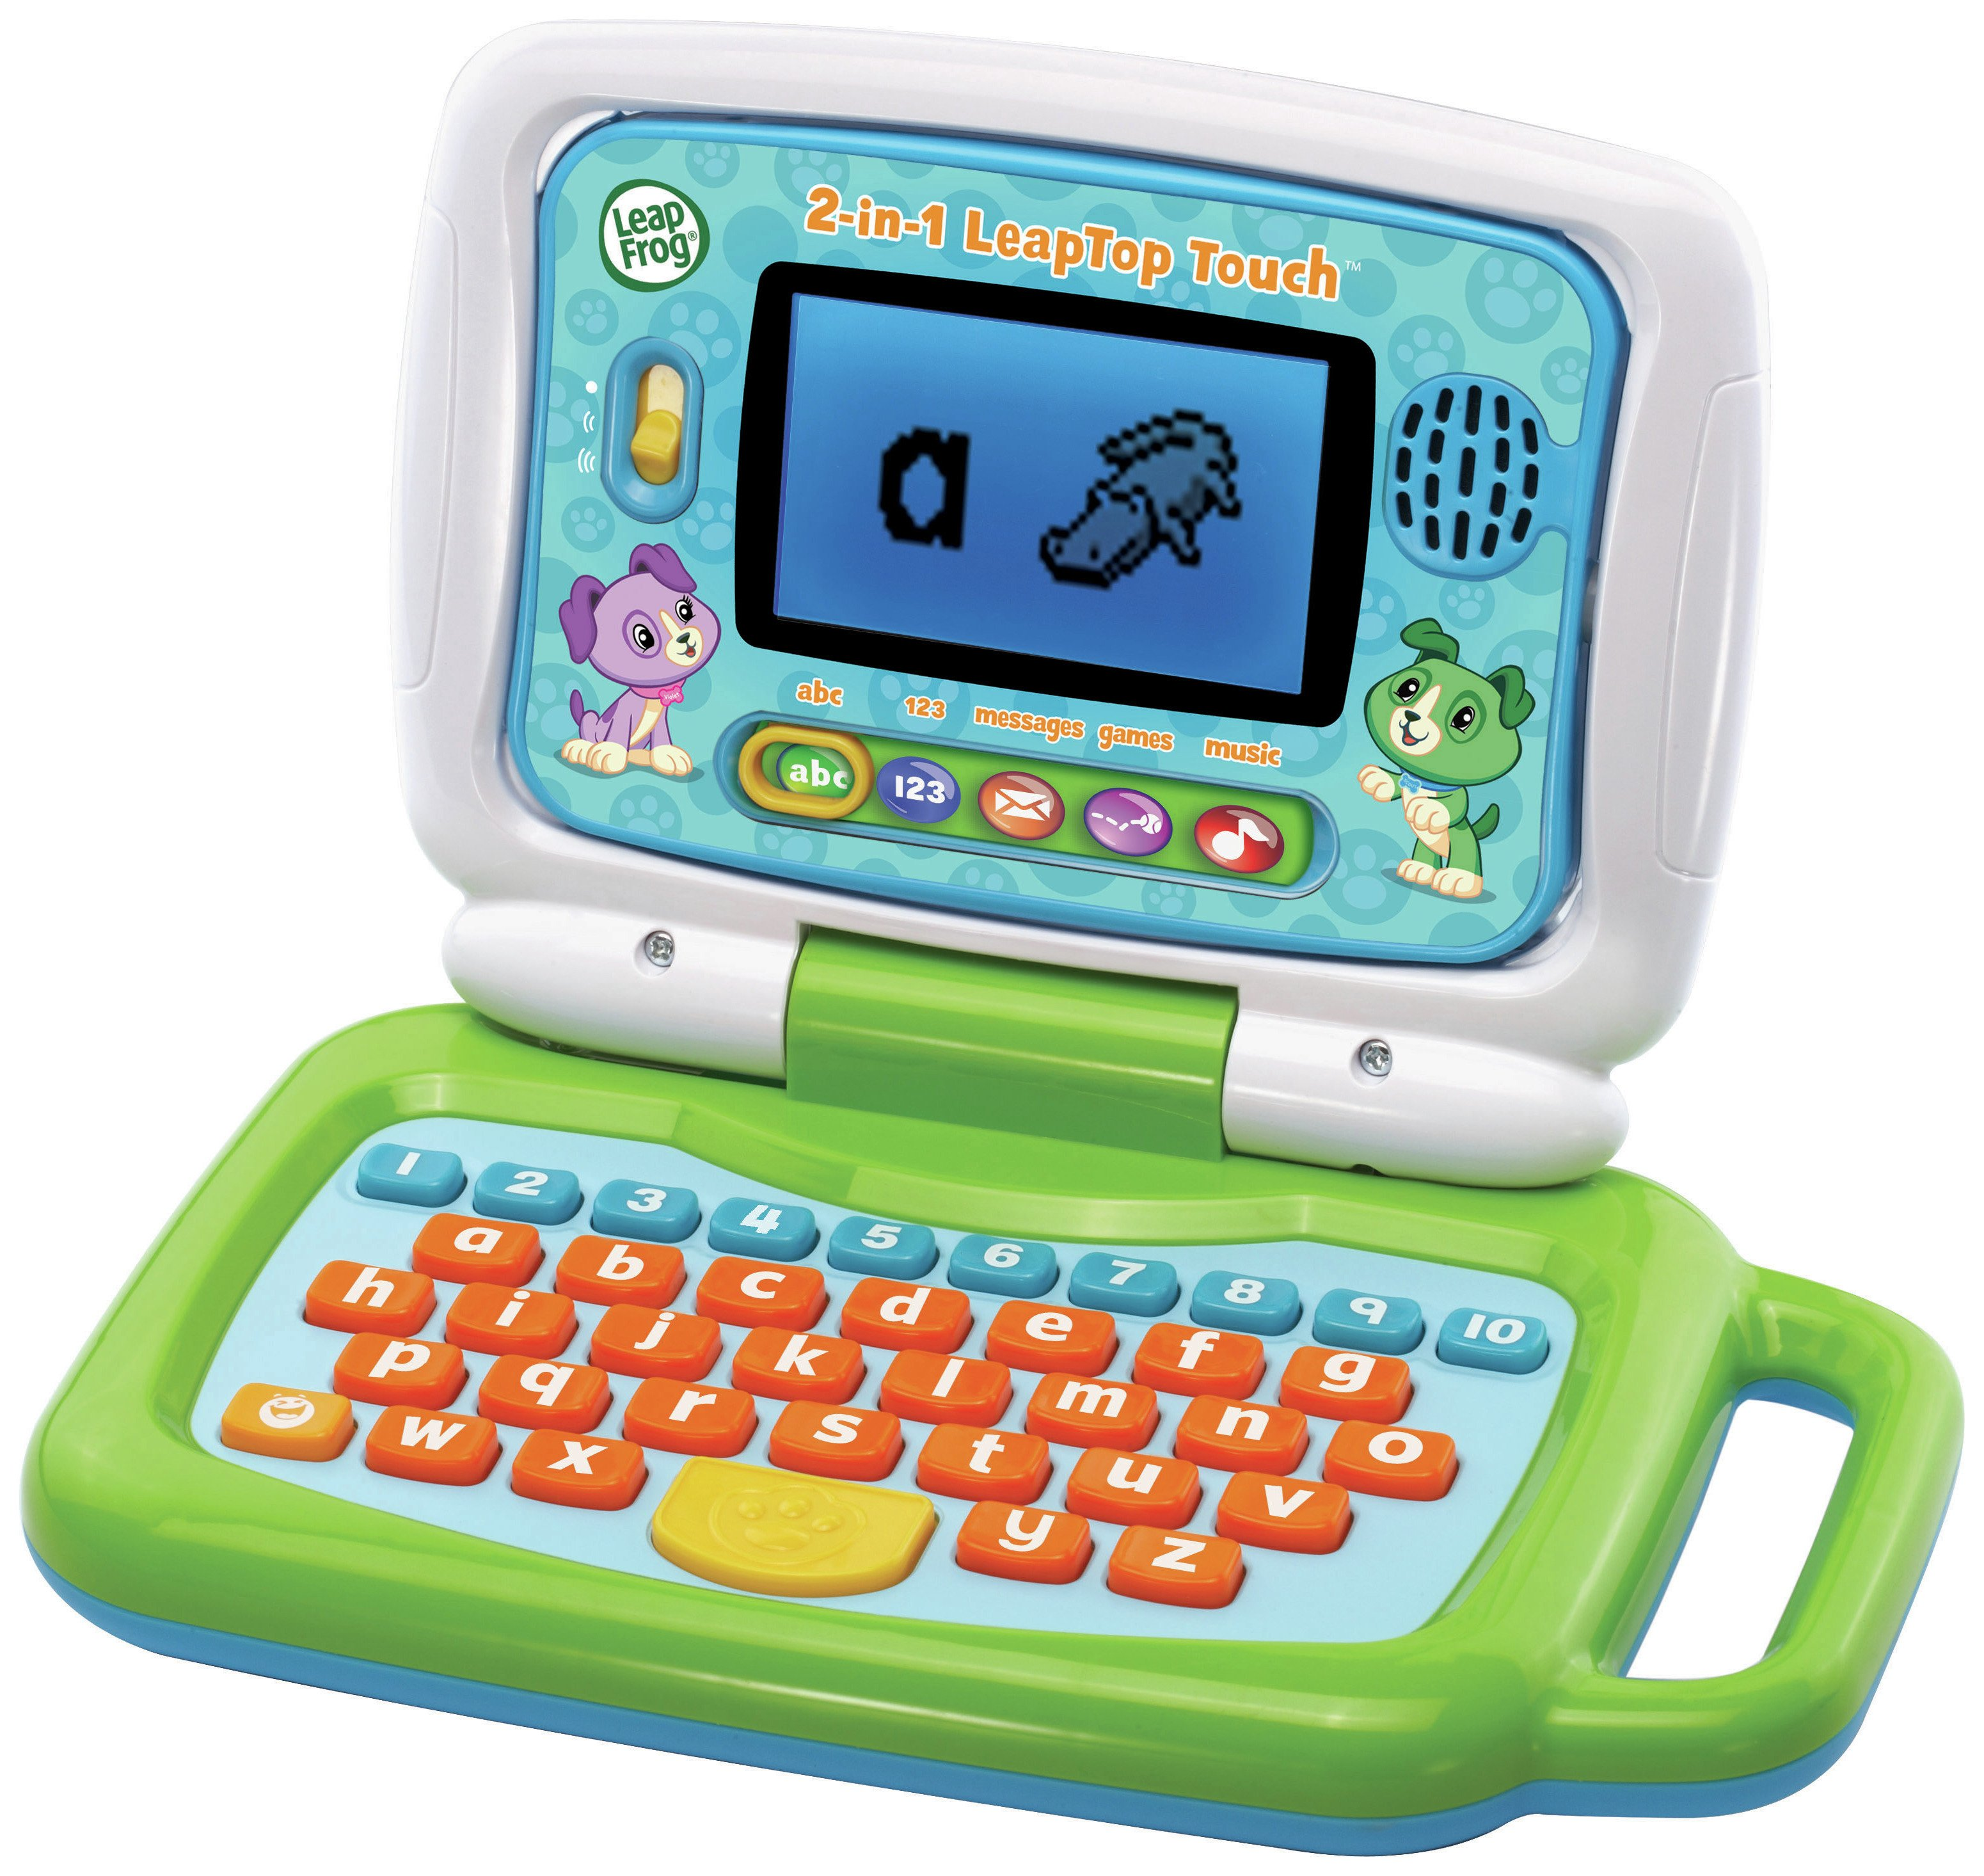 Image of LeapFrog 2 in 1 Laptop Touch - Green